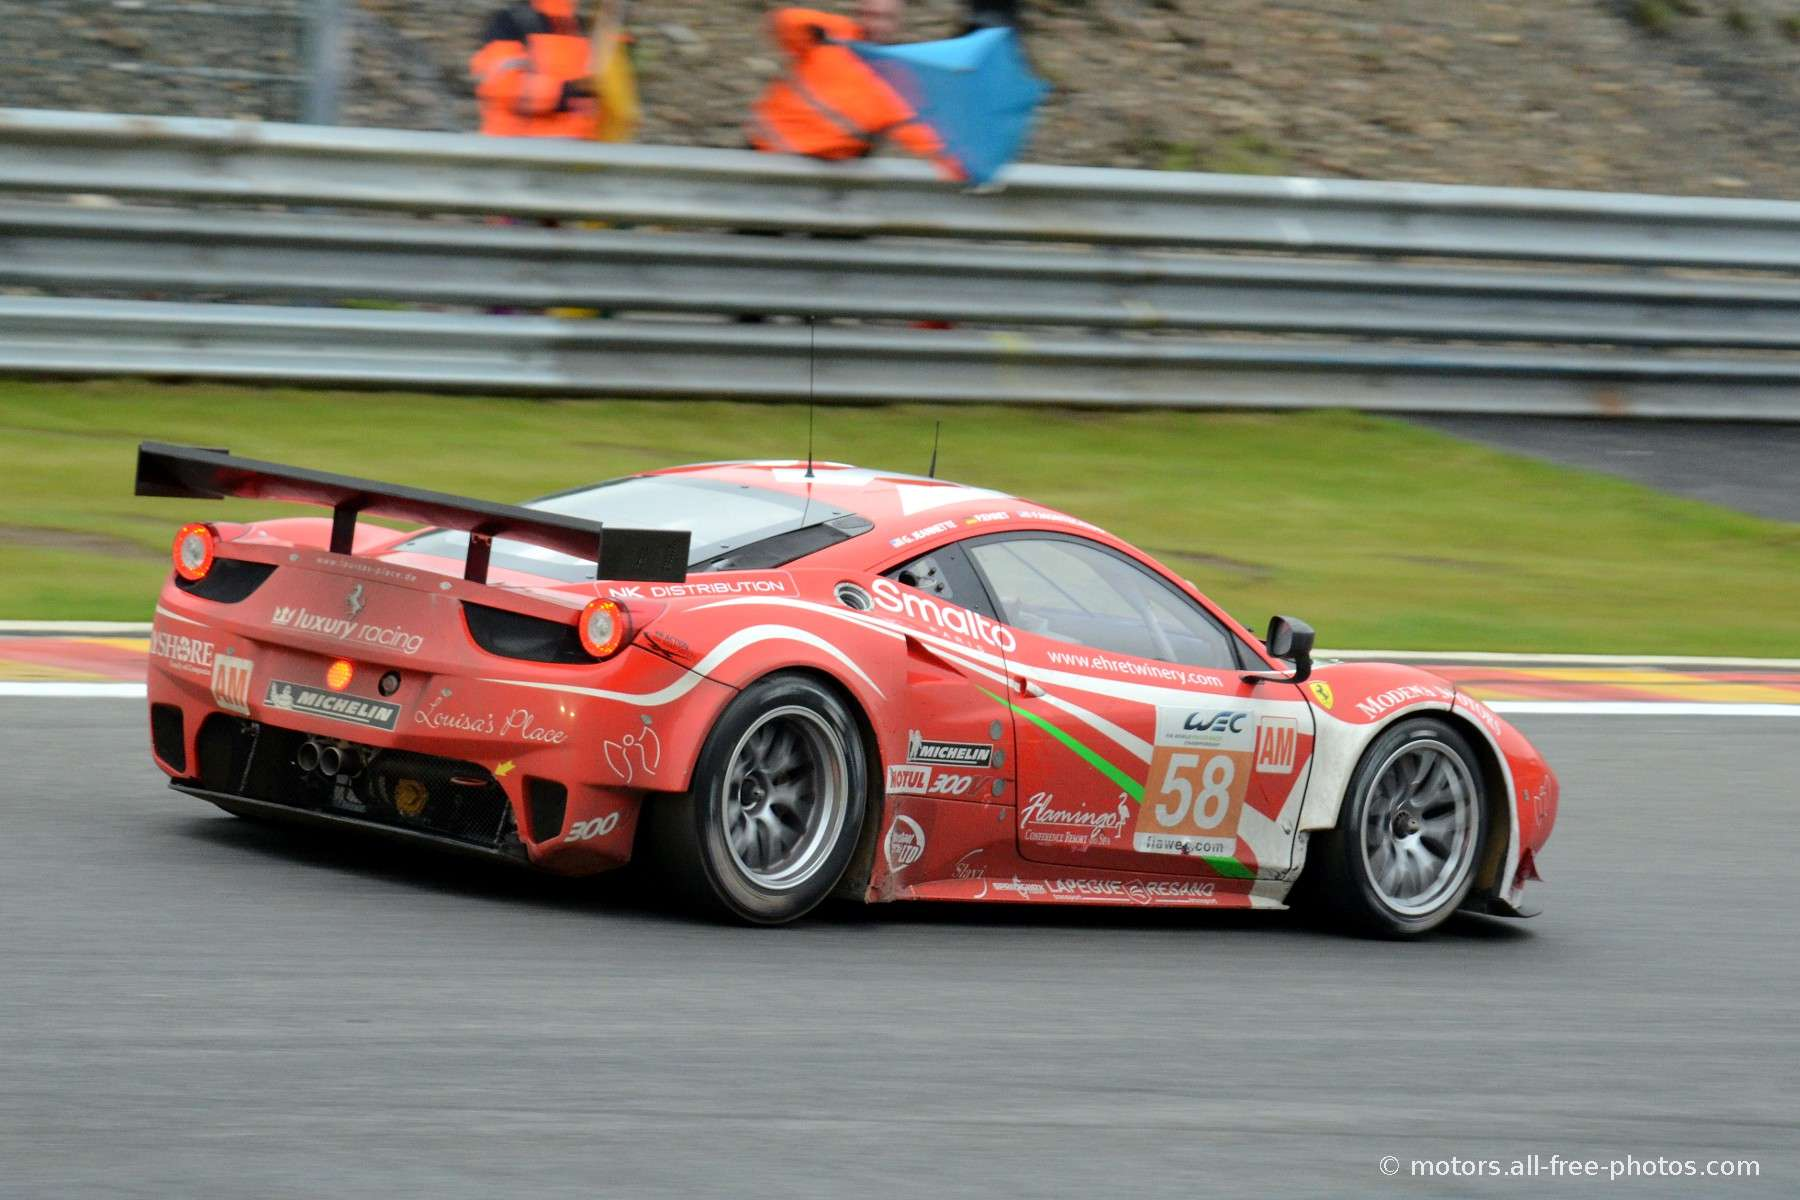 Ferrari 458 Italia - Team Luxury Racing